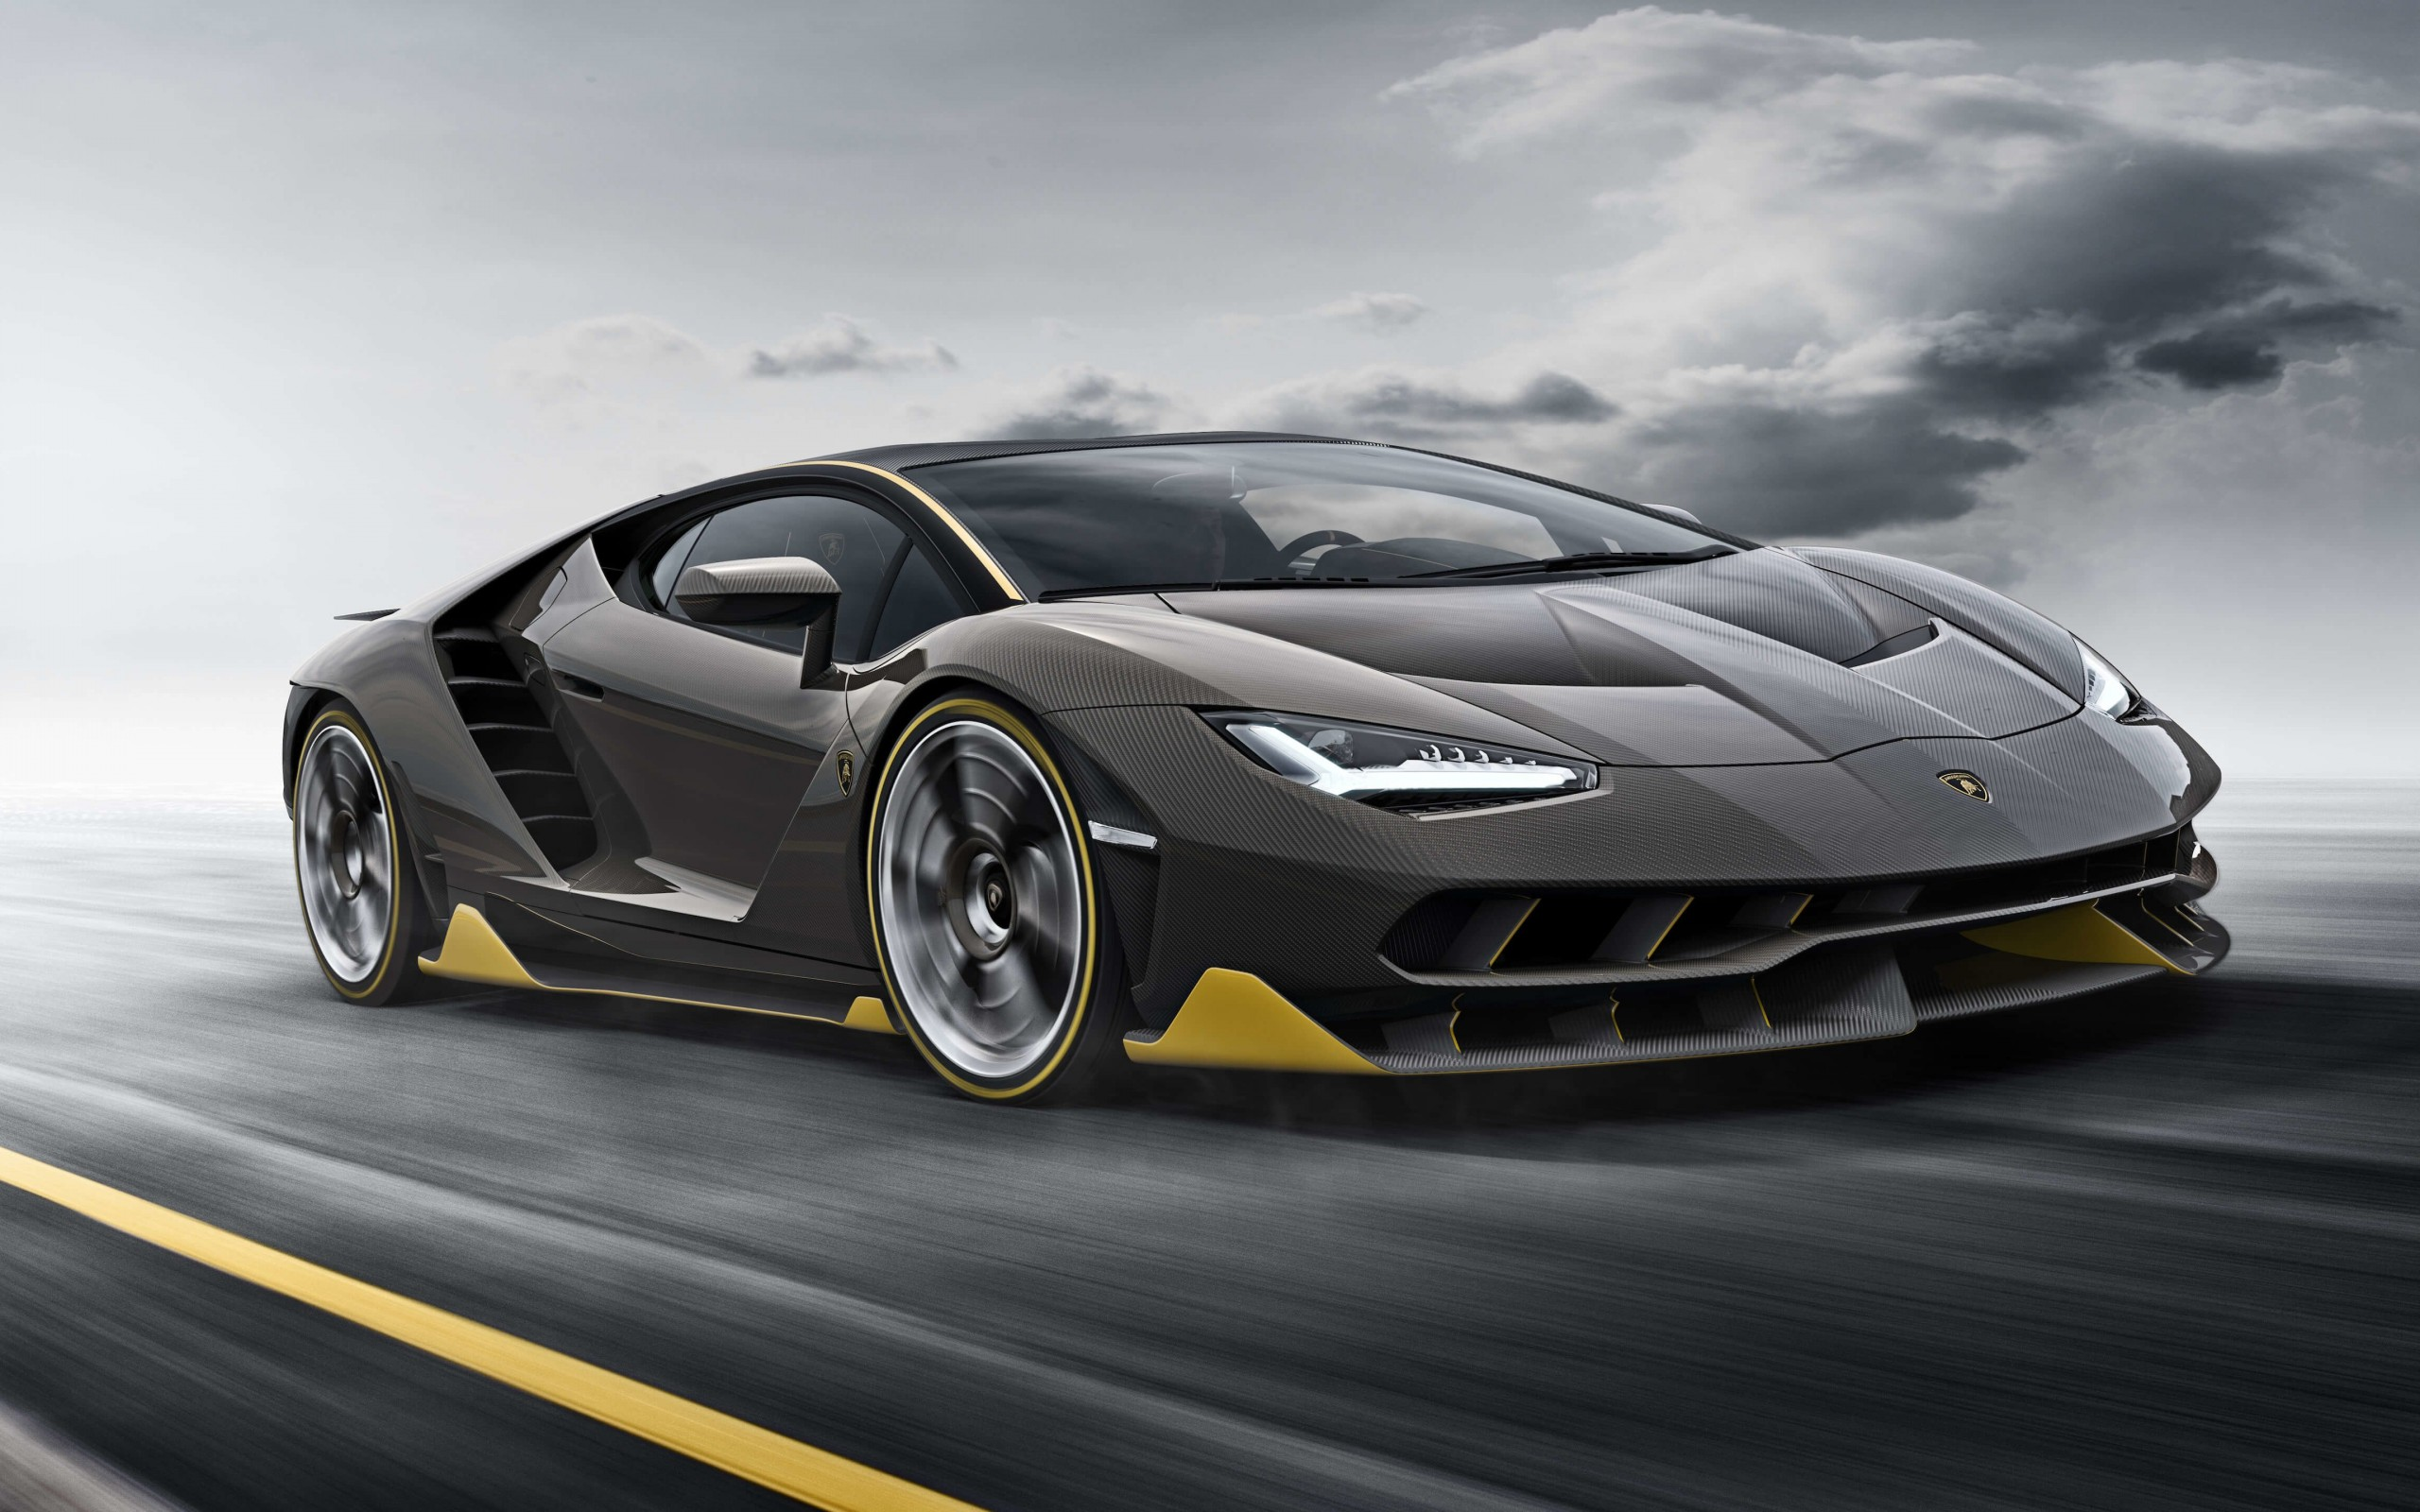 Lamborghini Centenario LP770-4 Wallpaper for Desktop 2560x1600